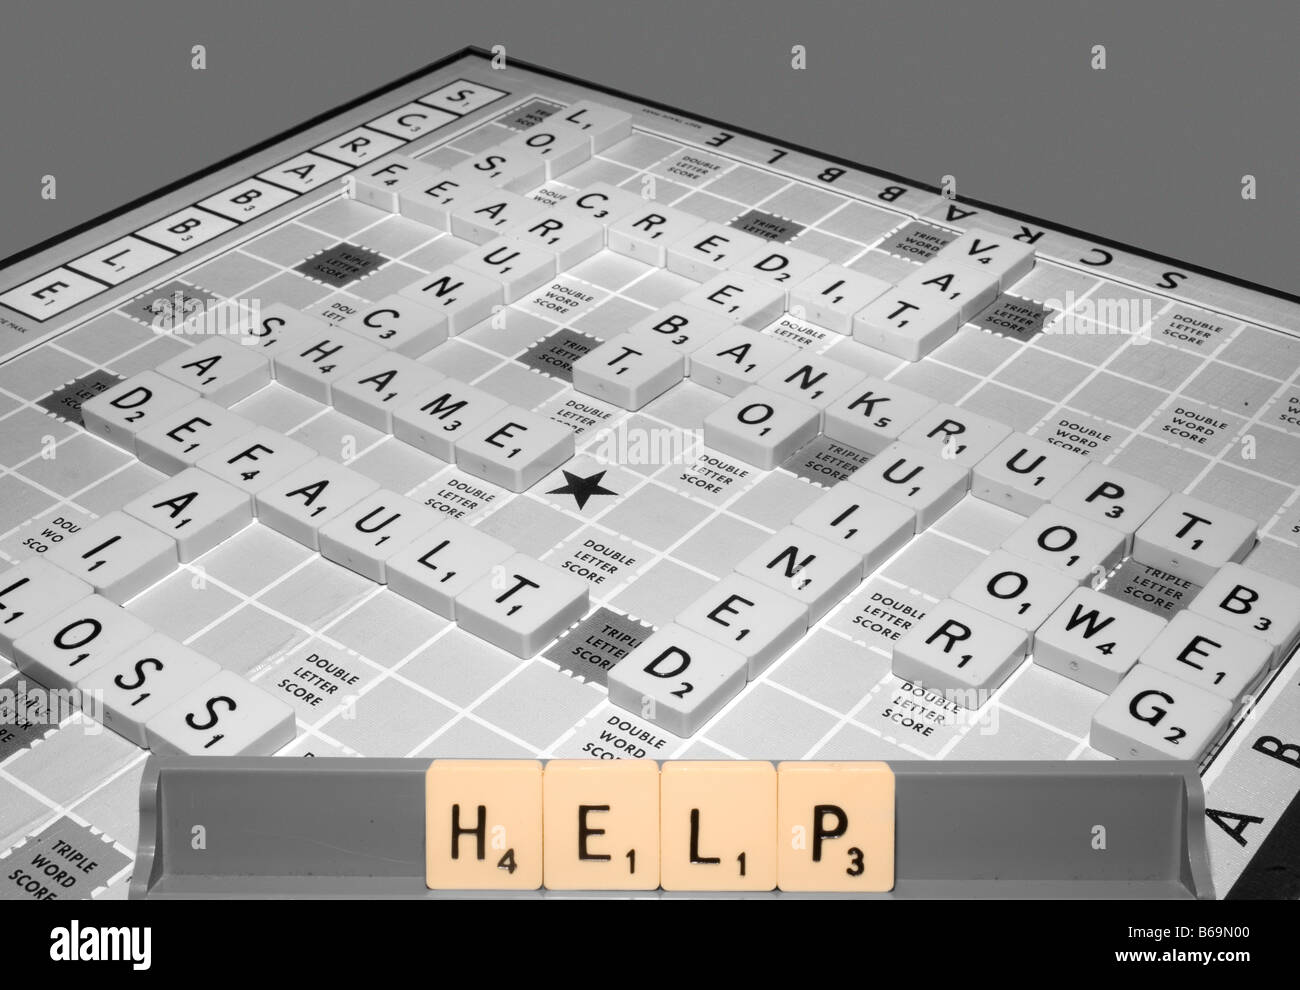 A scrabble game highlights global recession issues of the credit crunch and other financial implications and offers - Stock Image